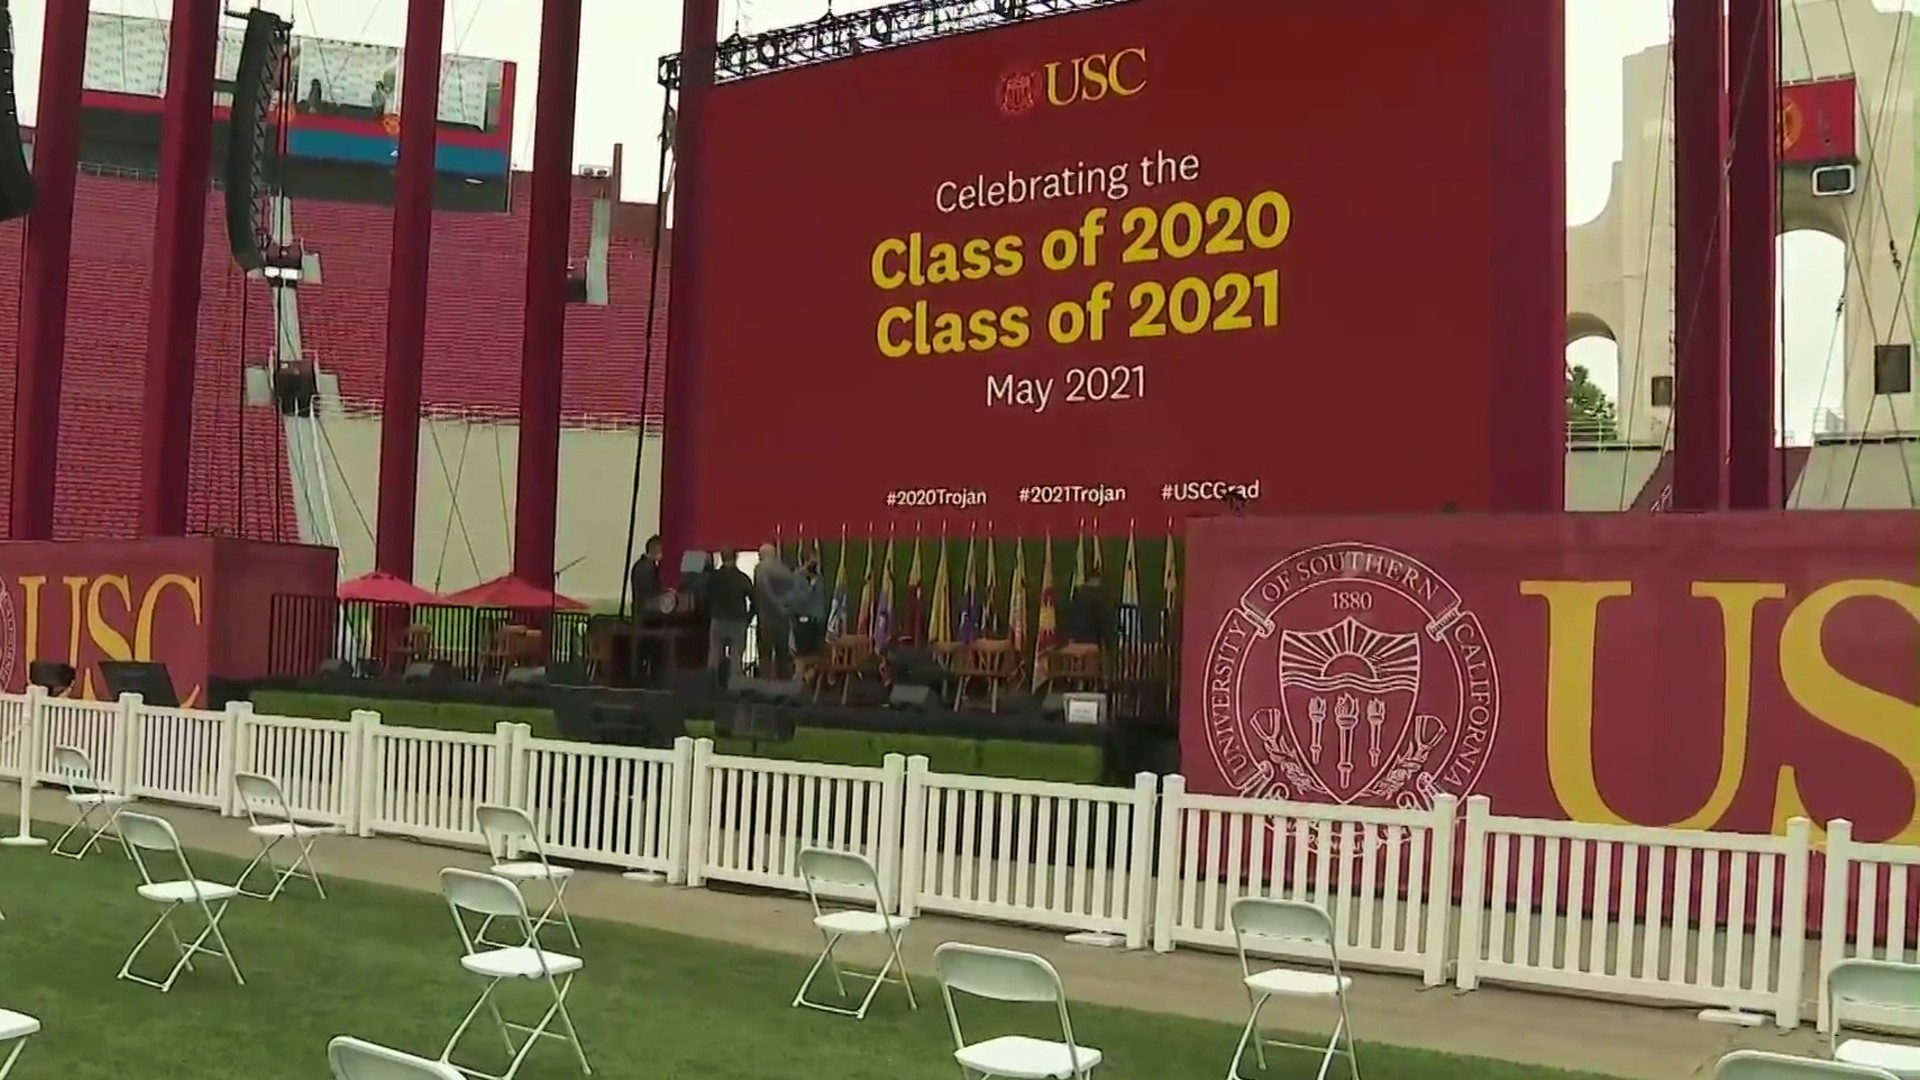 Preparations are made at the Los Angeles Memorial Coliseum for graduation ceremonies on May 14, 2021. (KTLA)